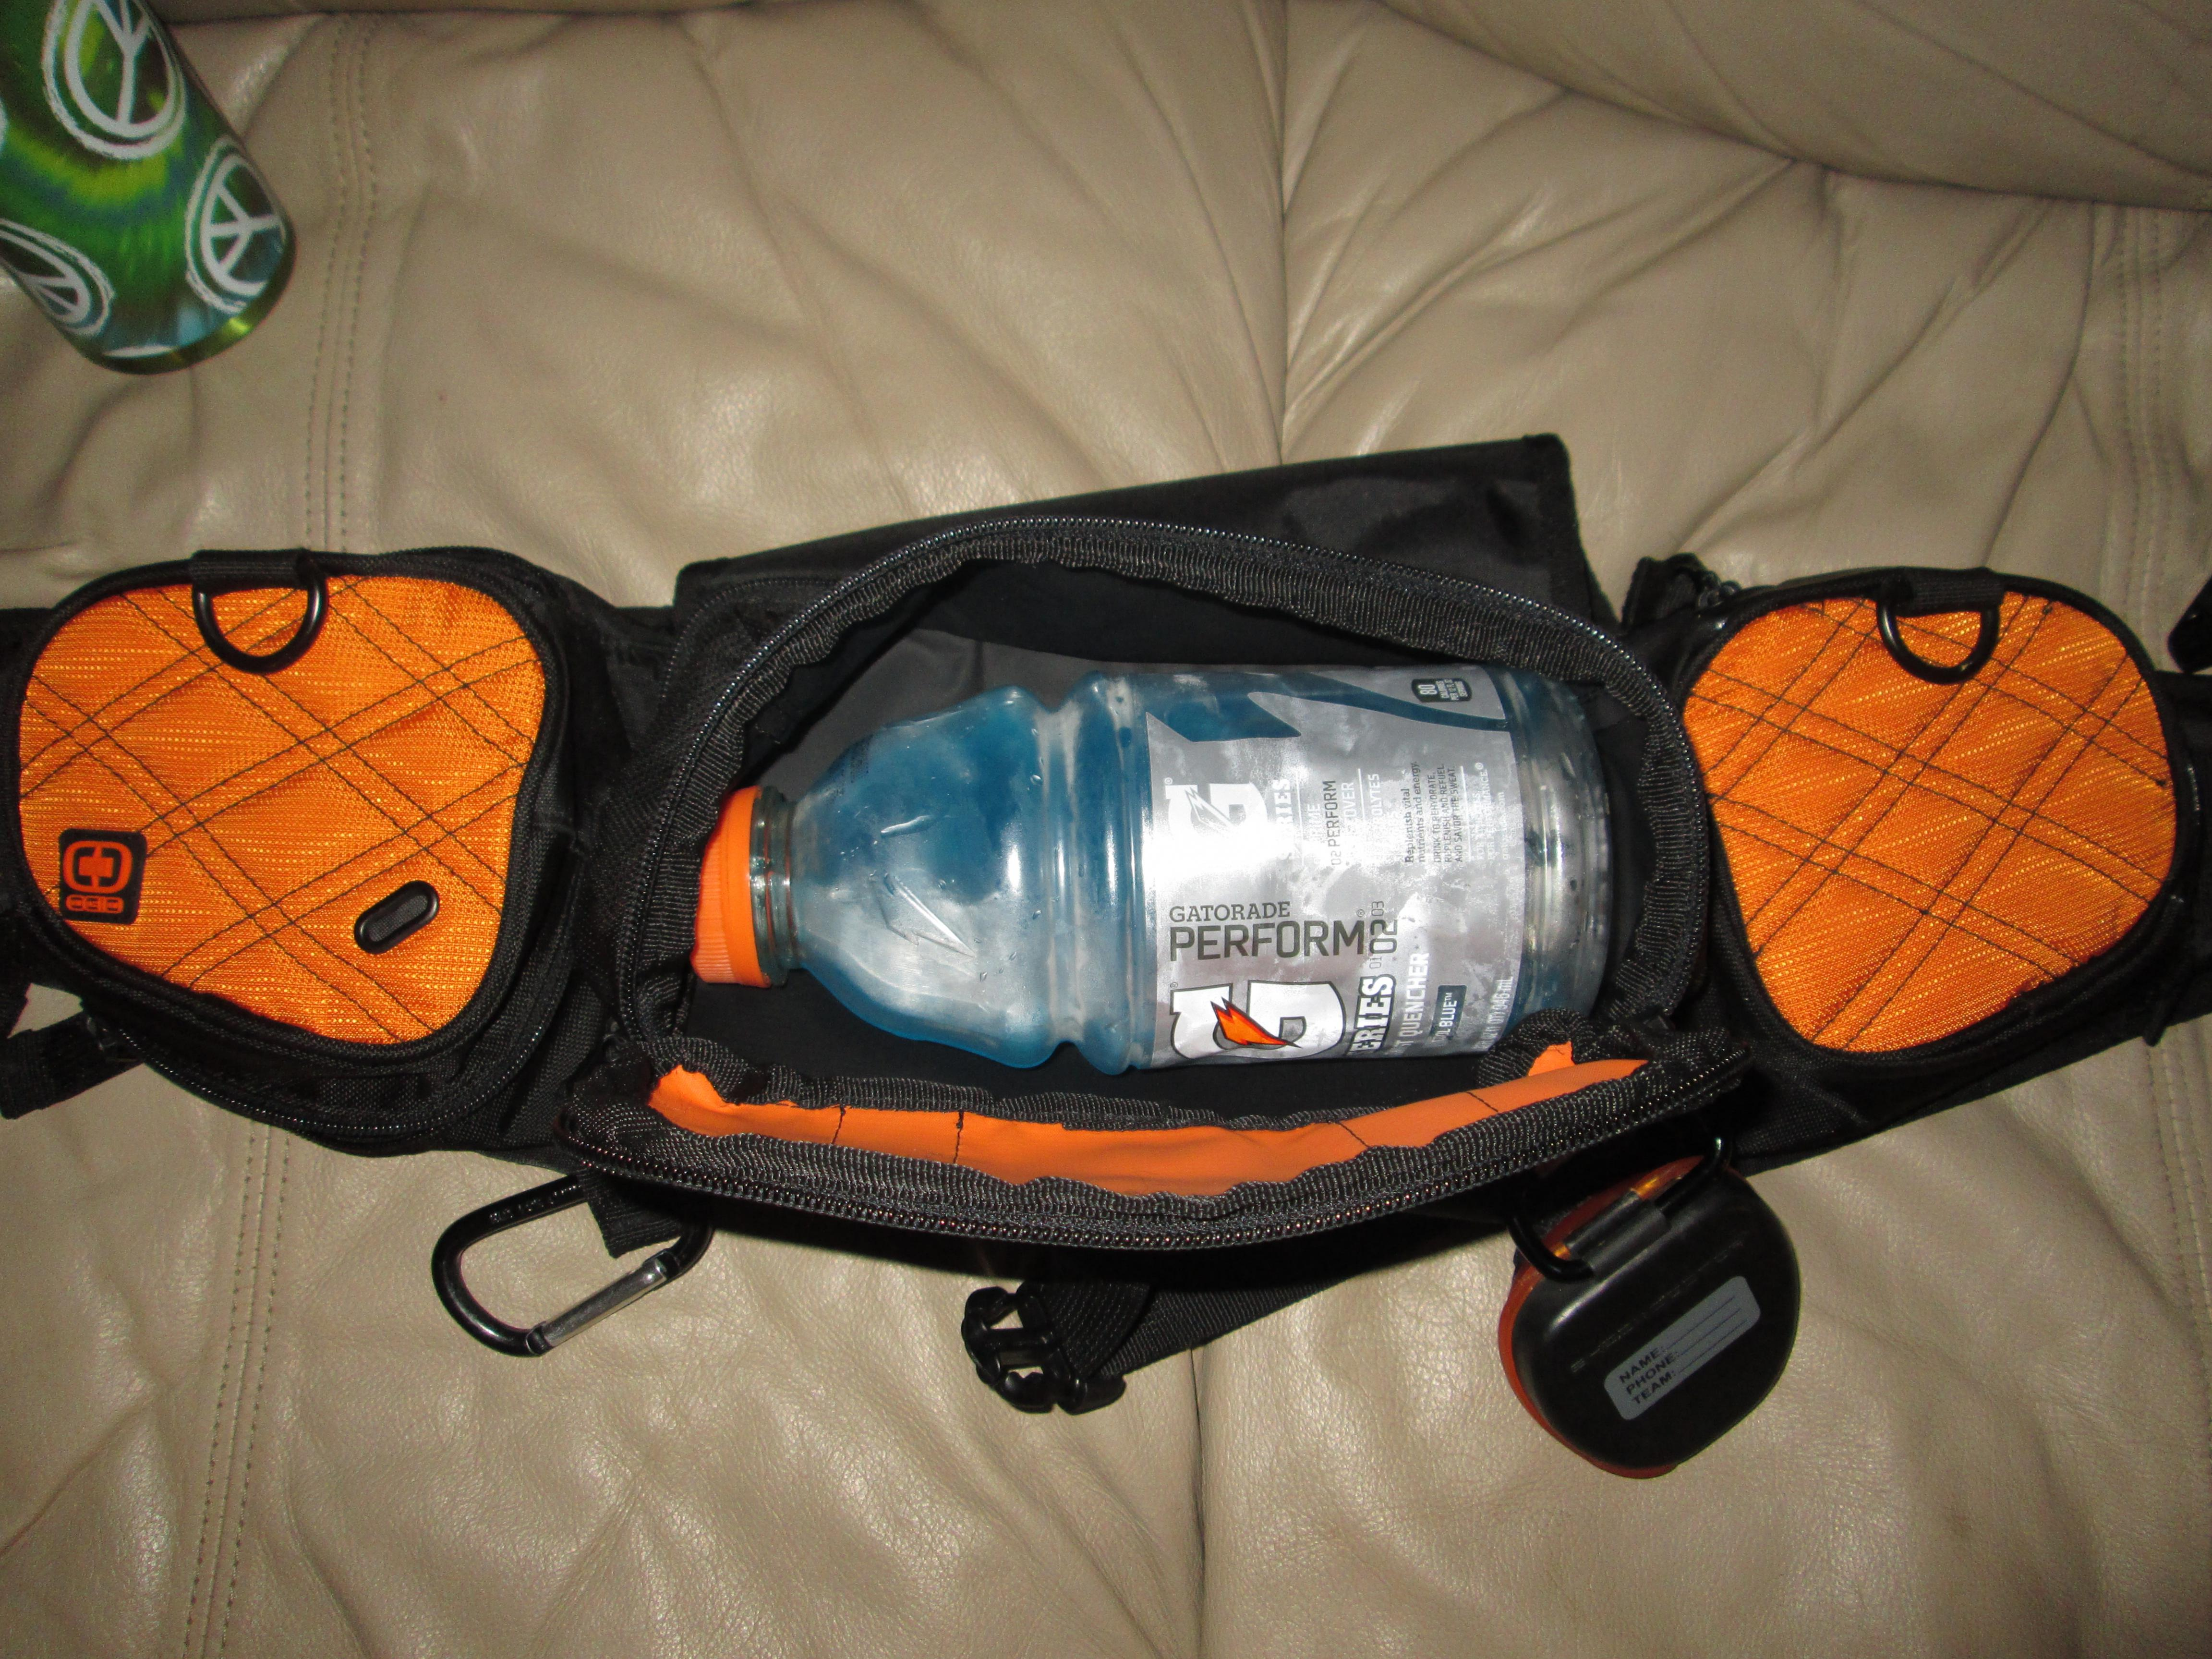 What is everyone using for storage while riding ? - Backpack or belt bag made by KTM-img_0257.jpg